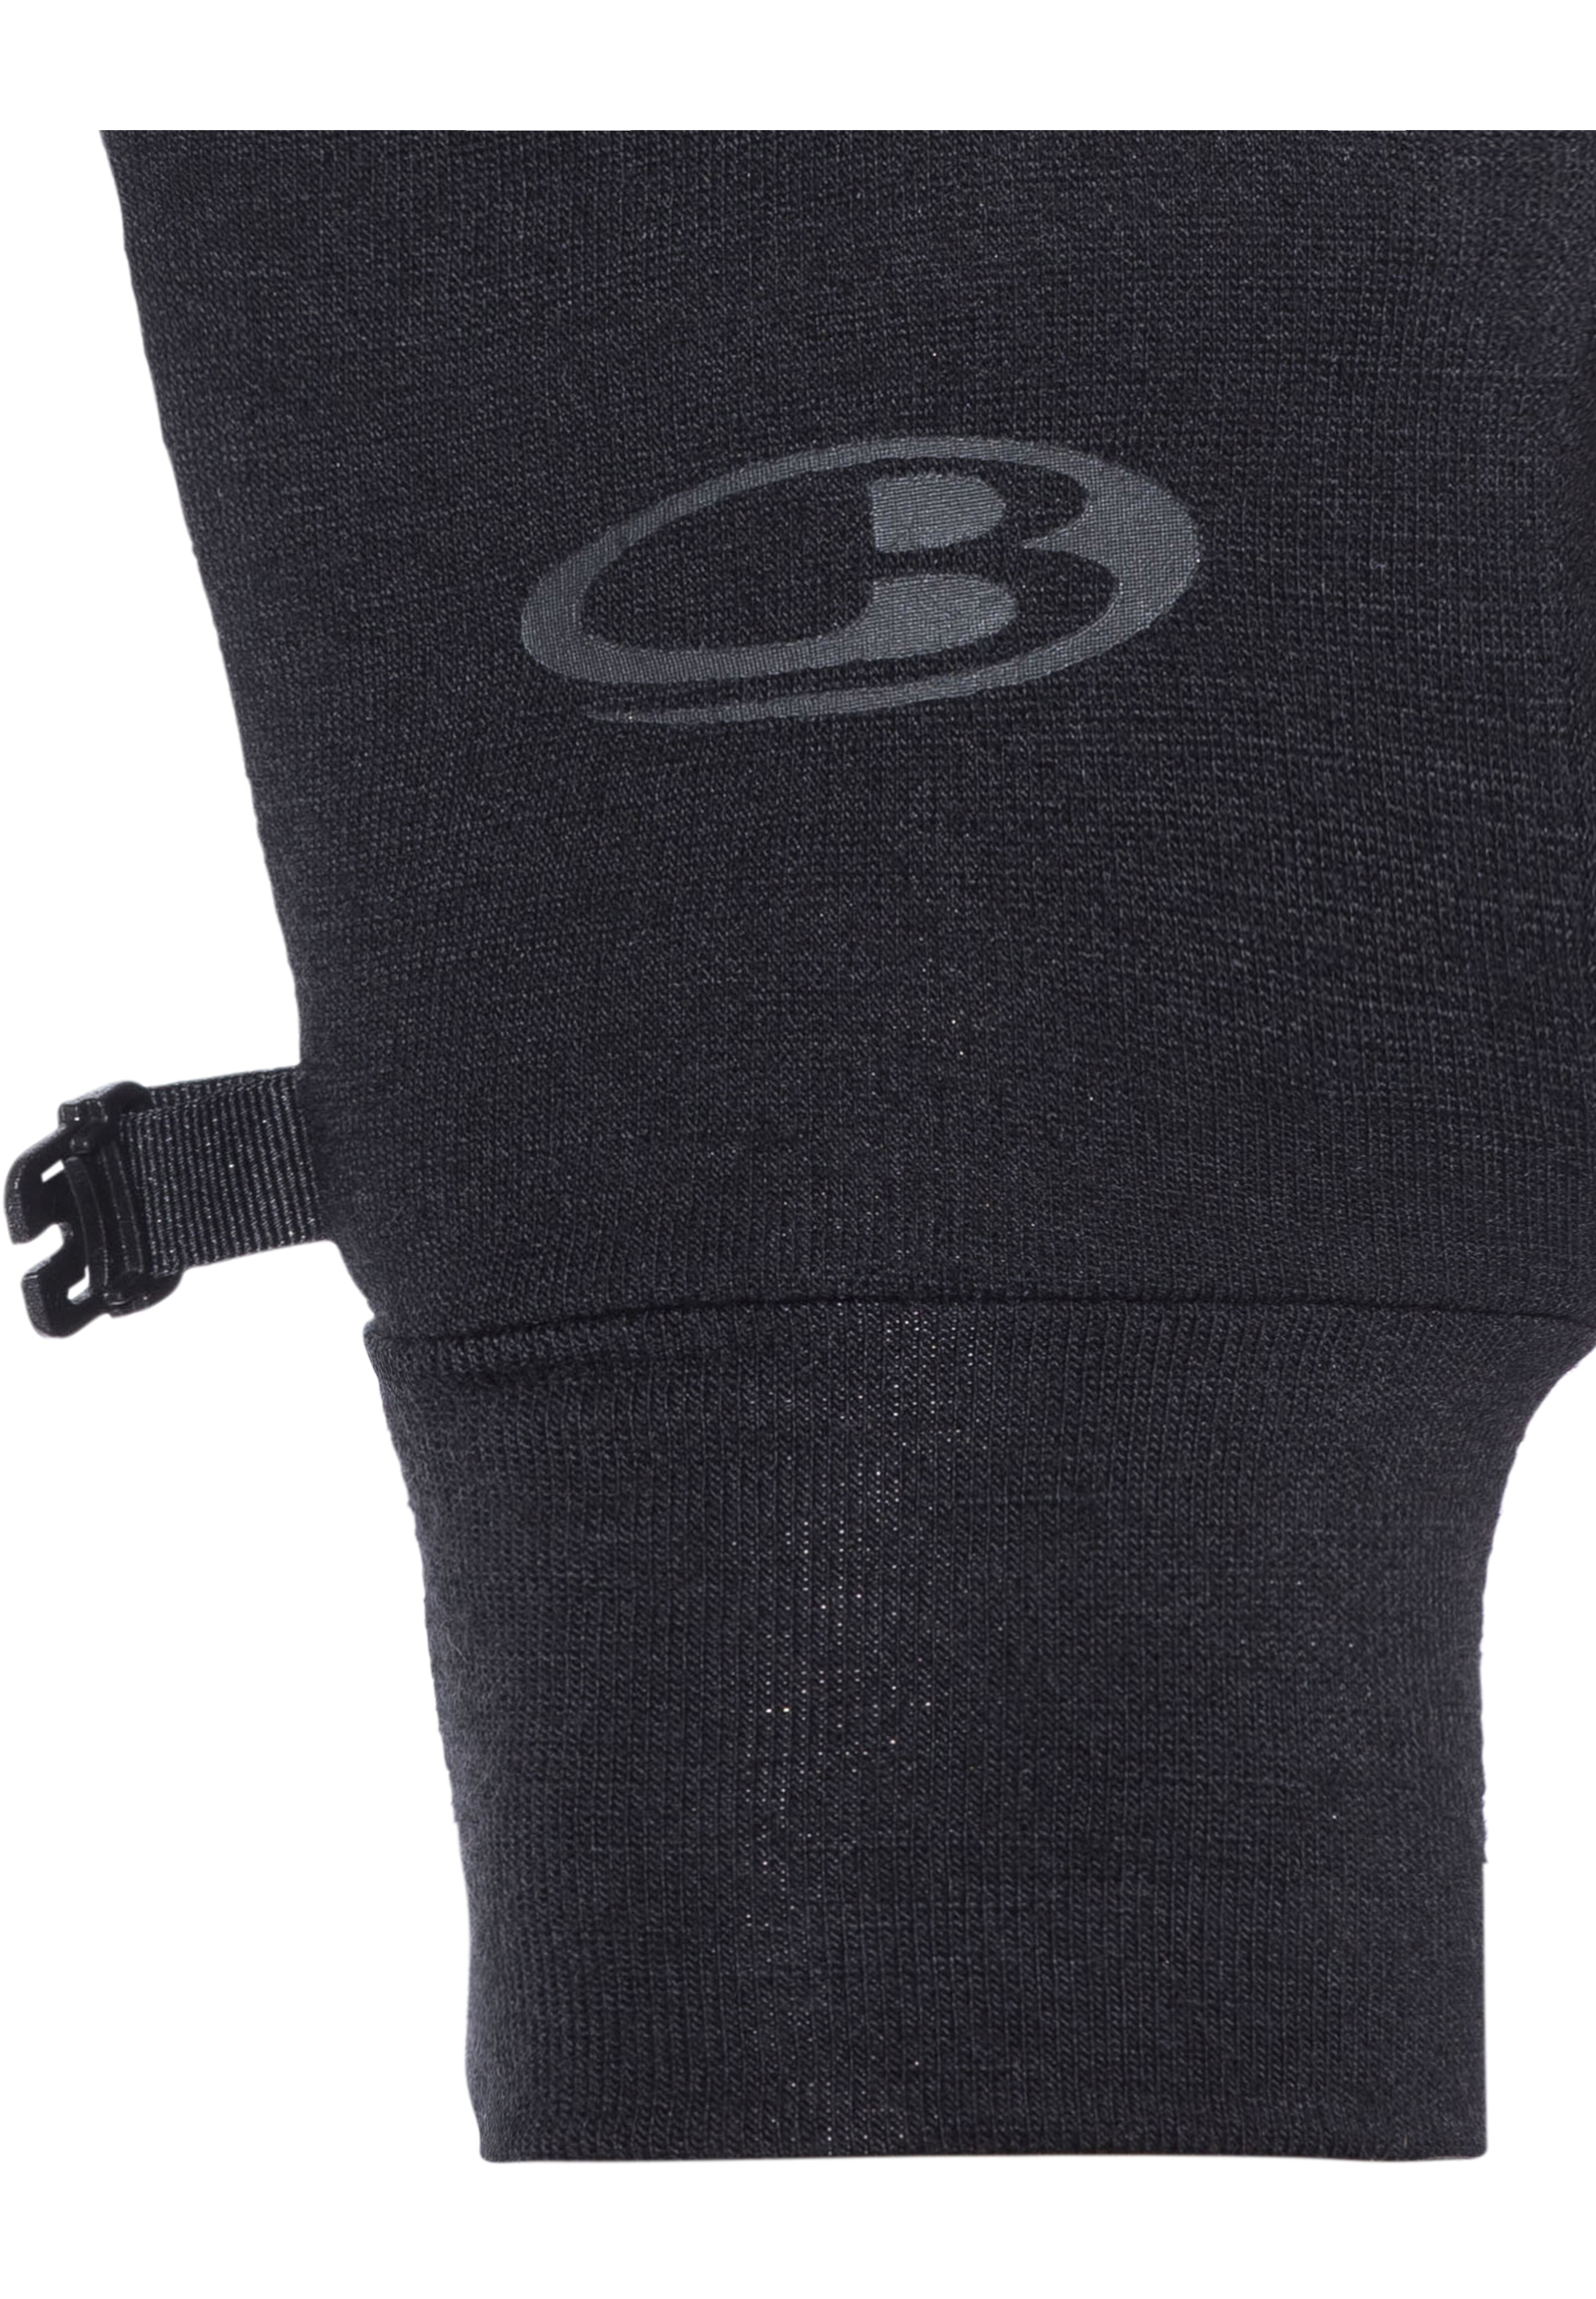 e4a4ed32922 Icebreaker Sierra Gloves black at Addnature.co.uk